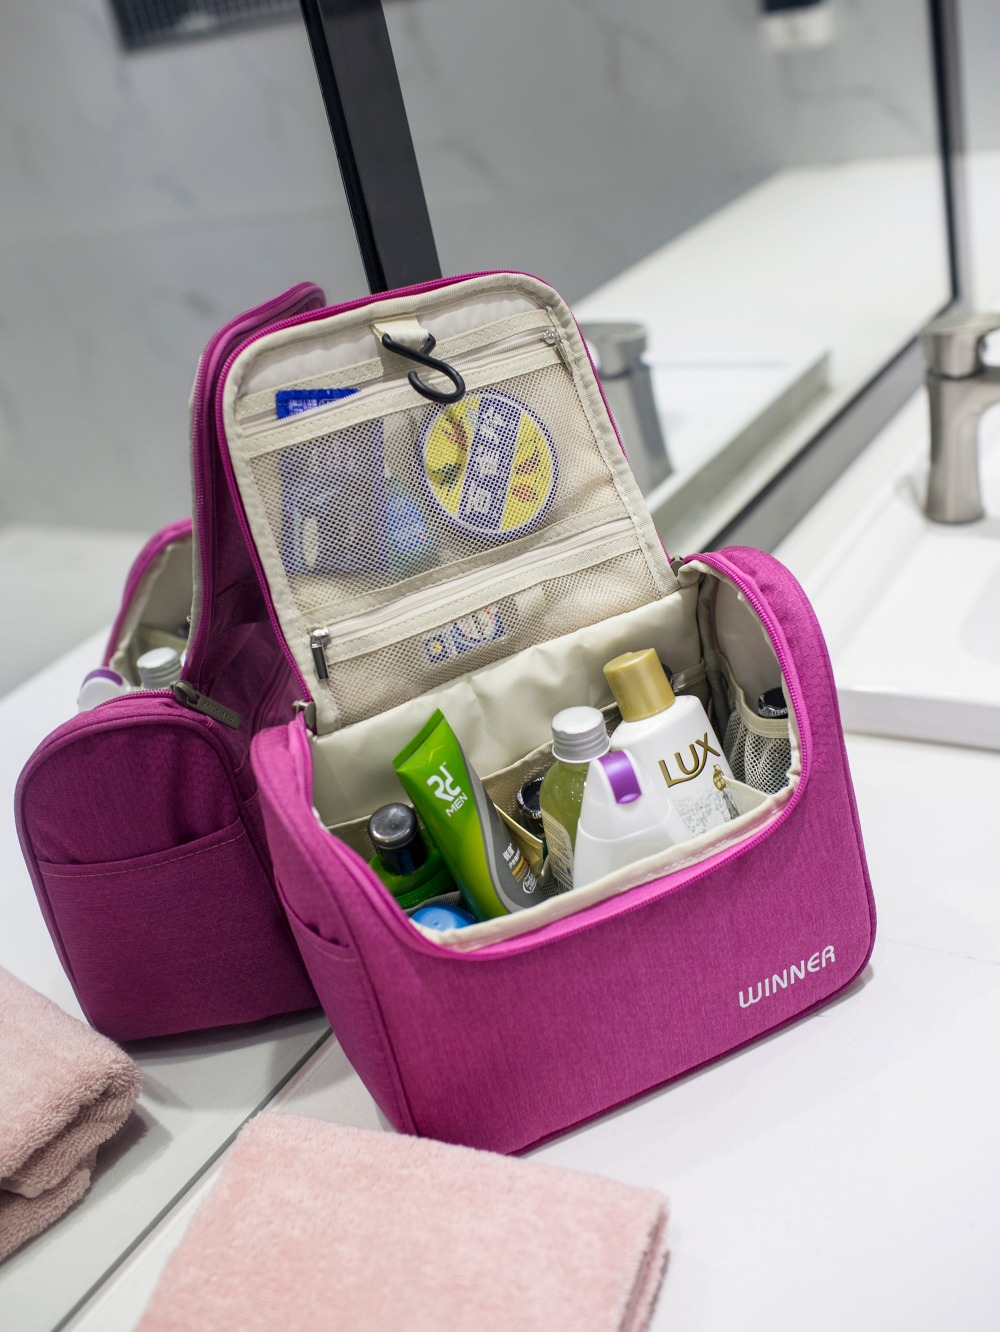 7971fa872e65 US $15.0 |Women Travel Organizer Bag Girl Cosmetic bag Hanging Makeup bags  Washing Toiletry kits storage Bags-in Cosmetic Bags & Cases from Luggage &  ...